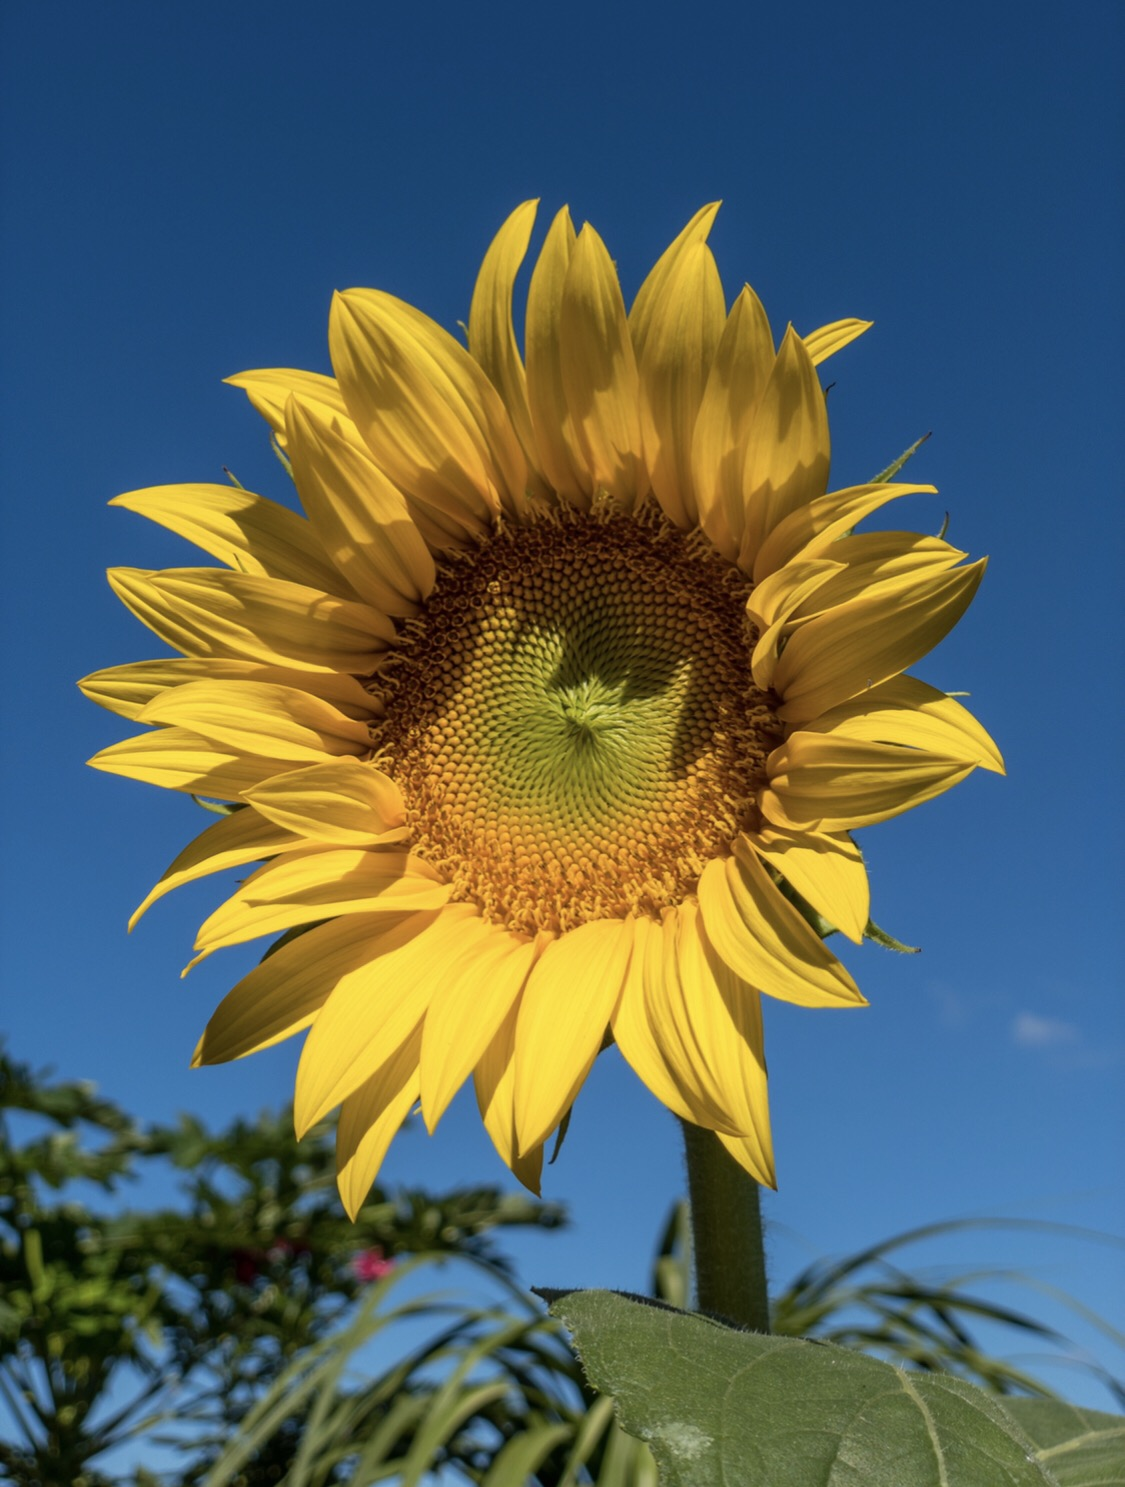 The beauty of a sunflower 🌻🌻🌻